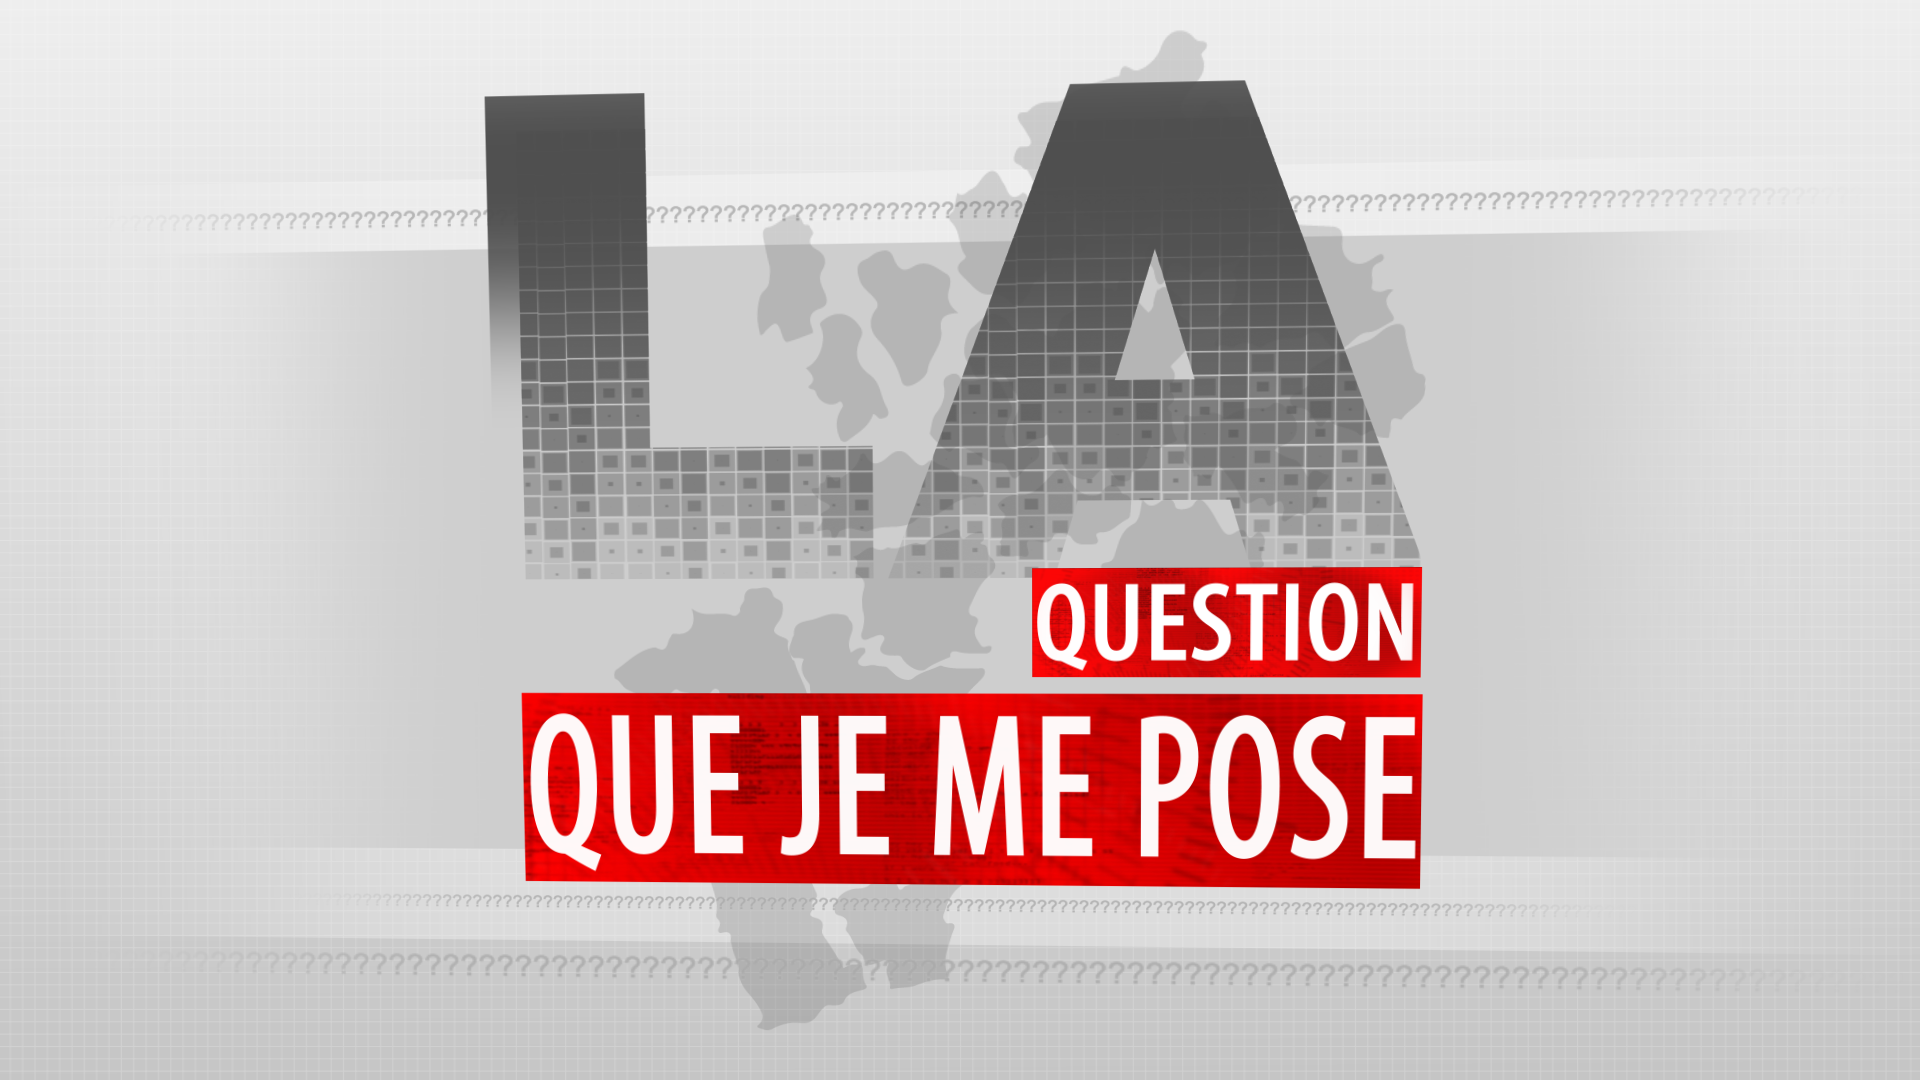 La question que je me pose